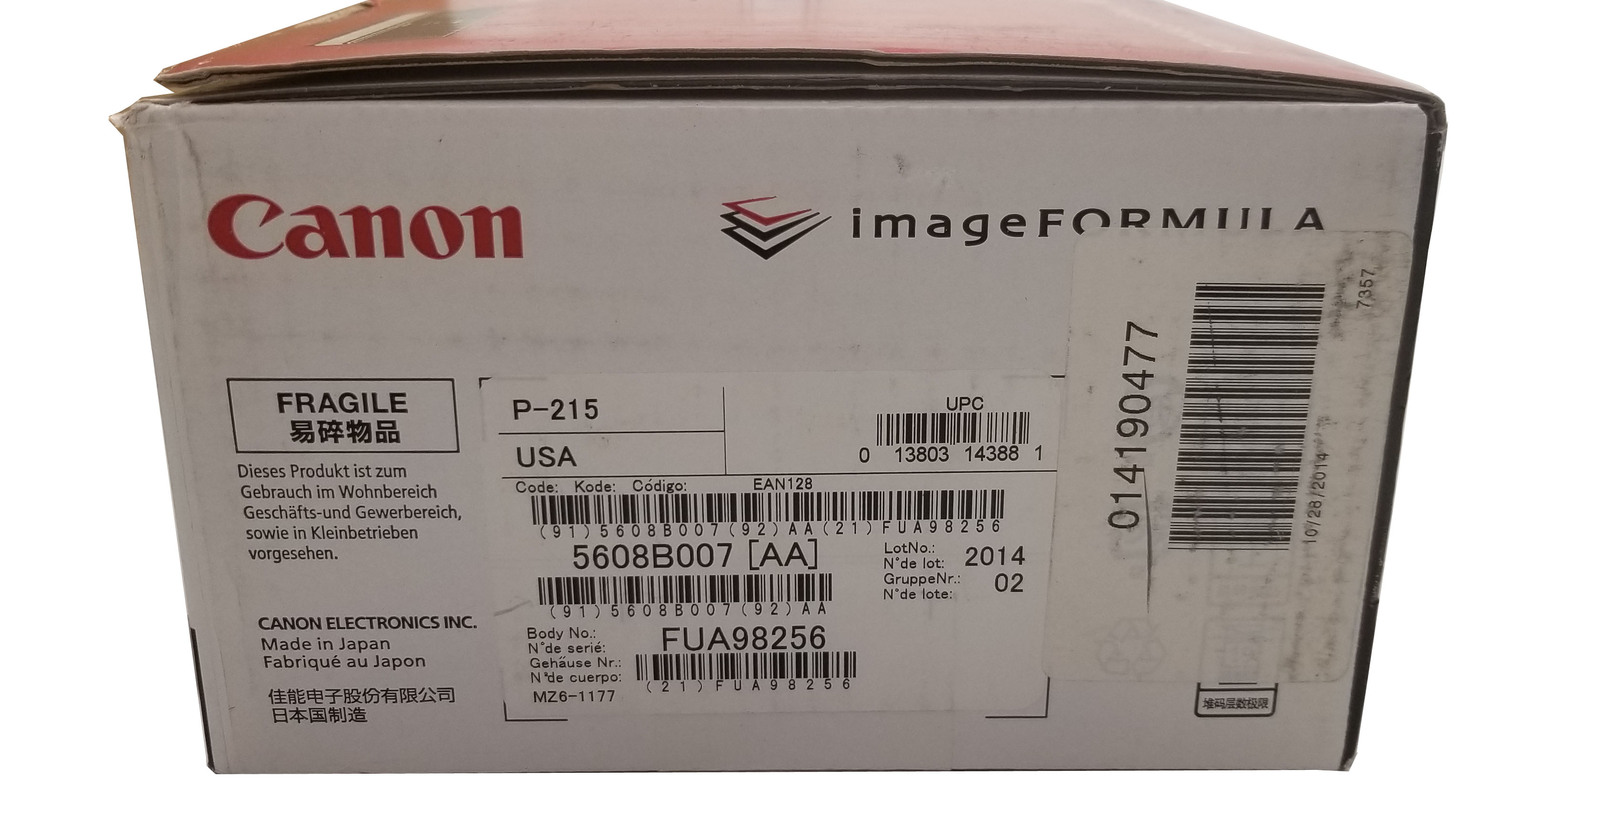 Canon P-215 Color Duplex USB Powered Sheetfed Scanner Bin: 9